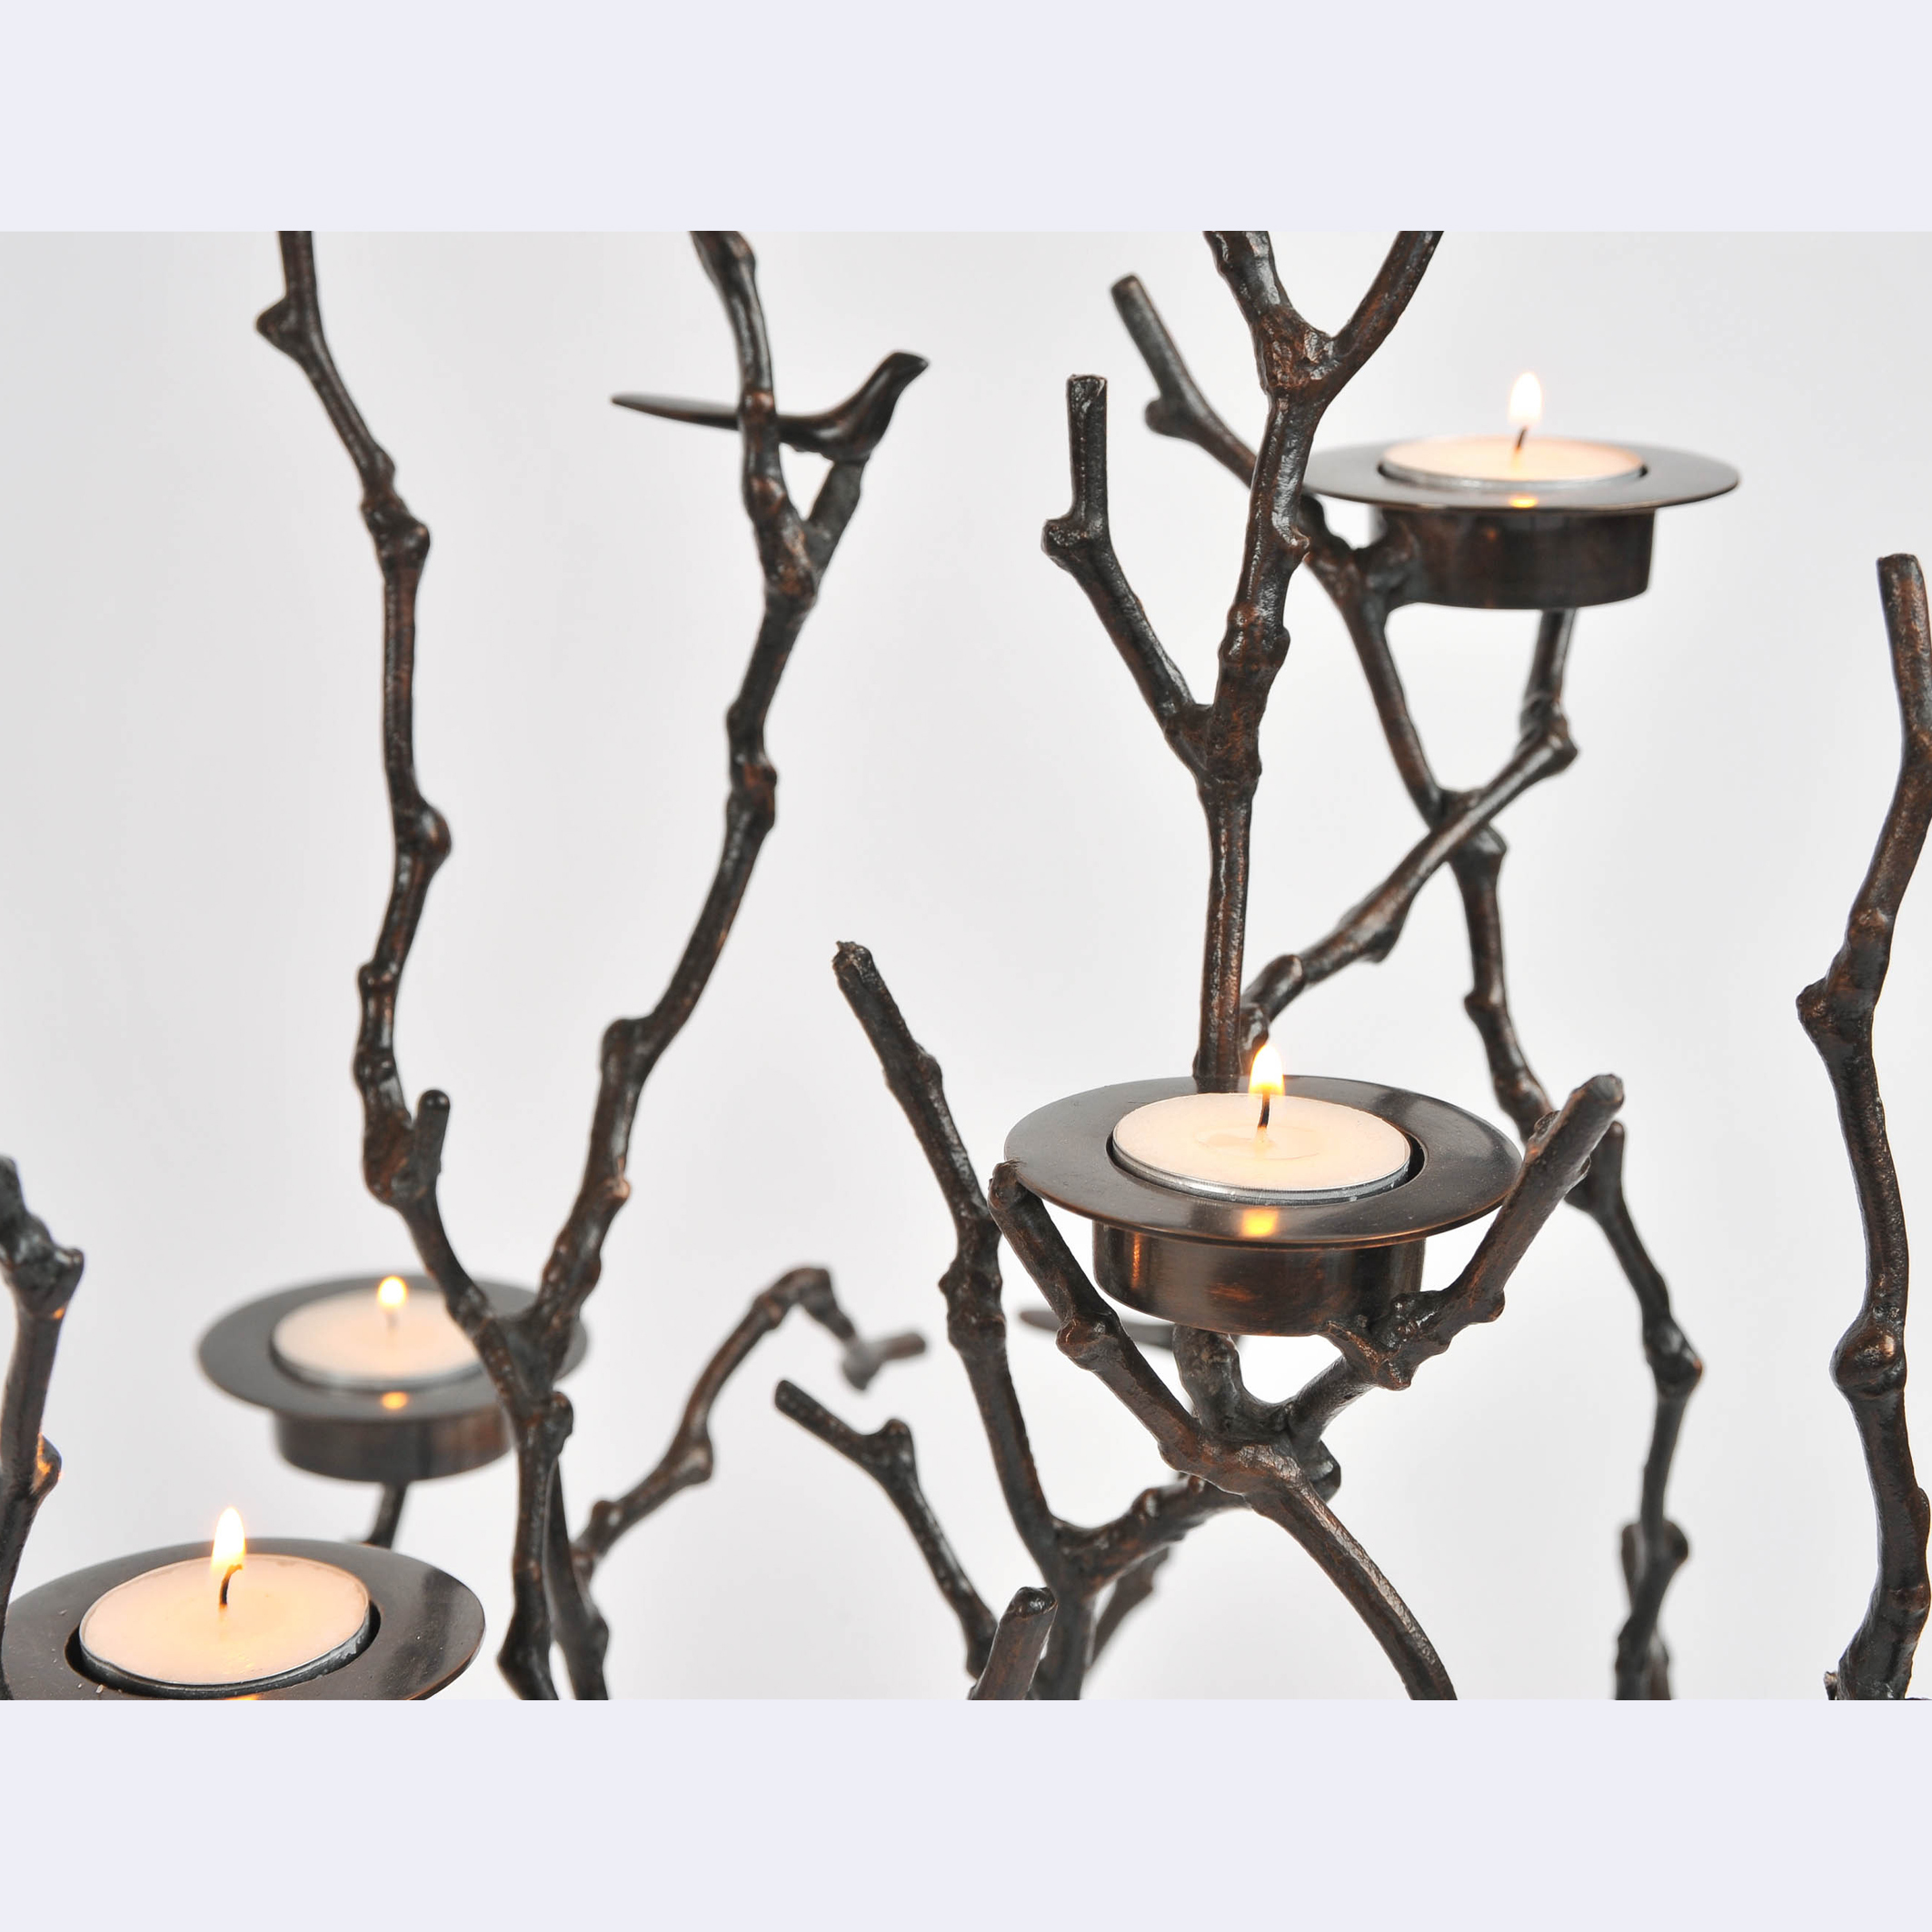 Valerie Wade Twig Candle Holder 03